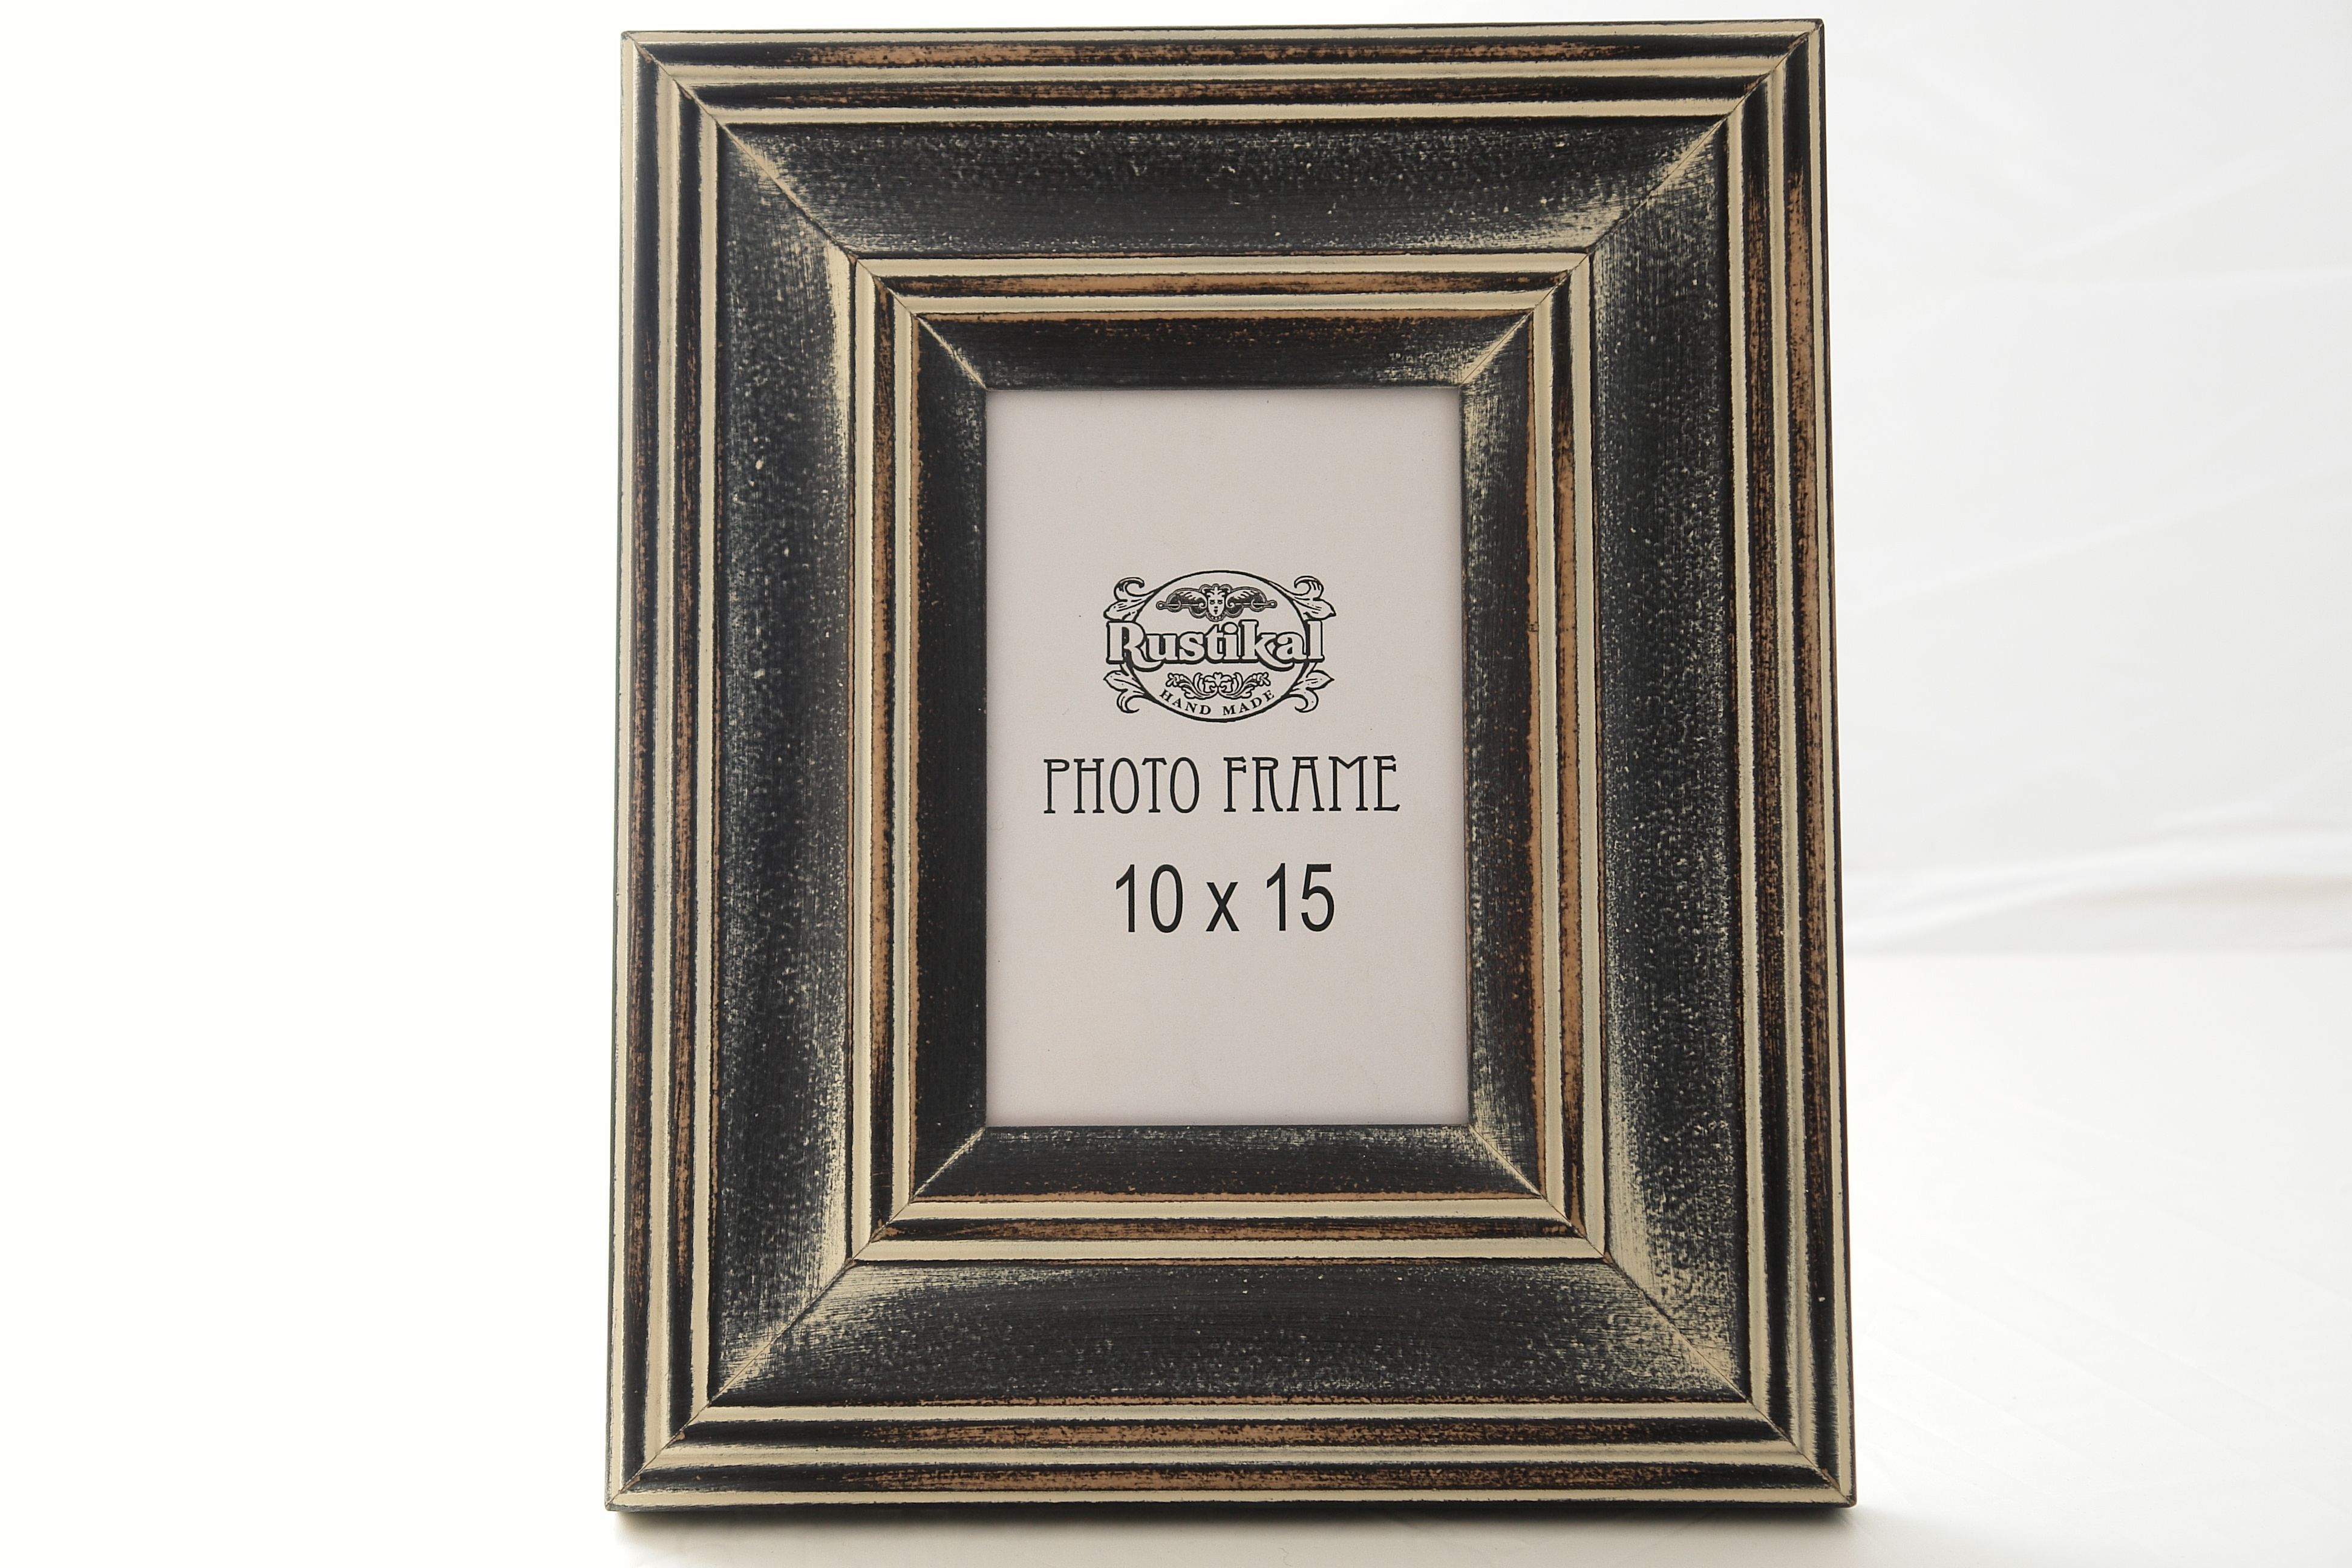 Producer Of Frames For Pictures Rustikal Hand Made Tel 48 889